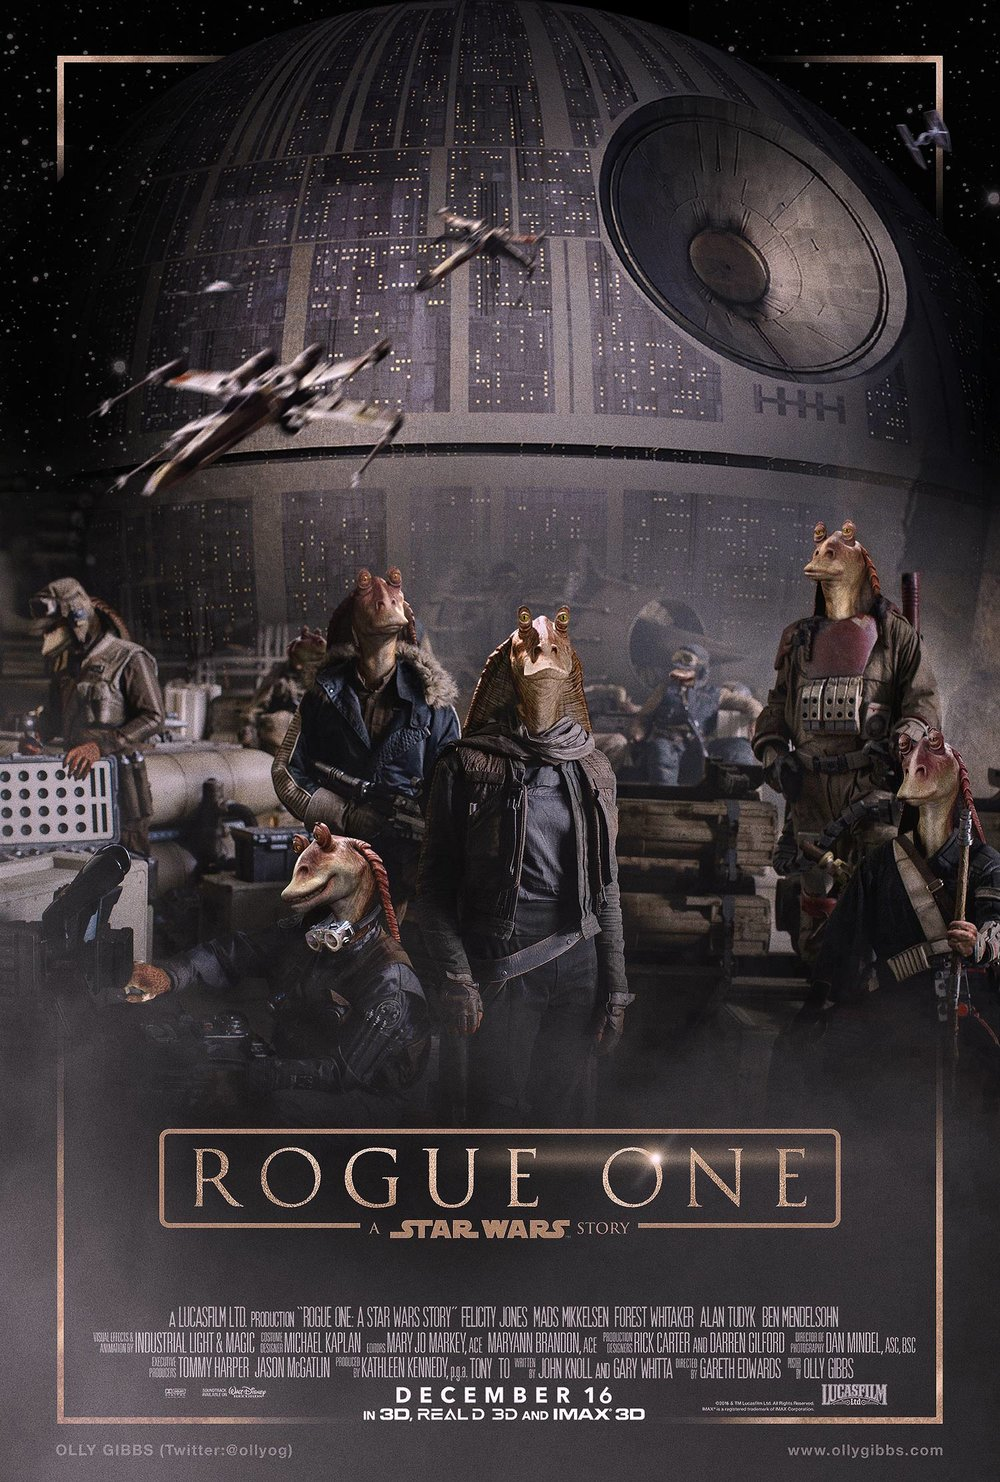 rogueone-hires-smaller.jpg